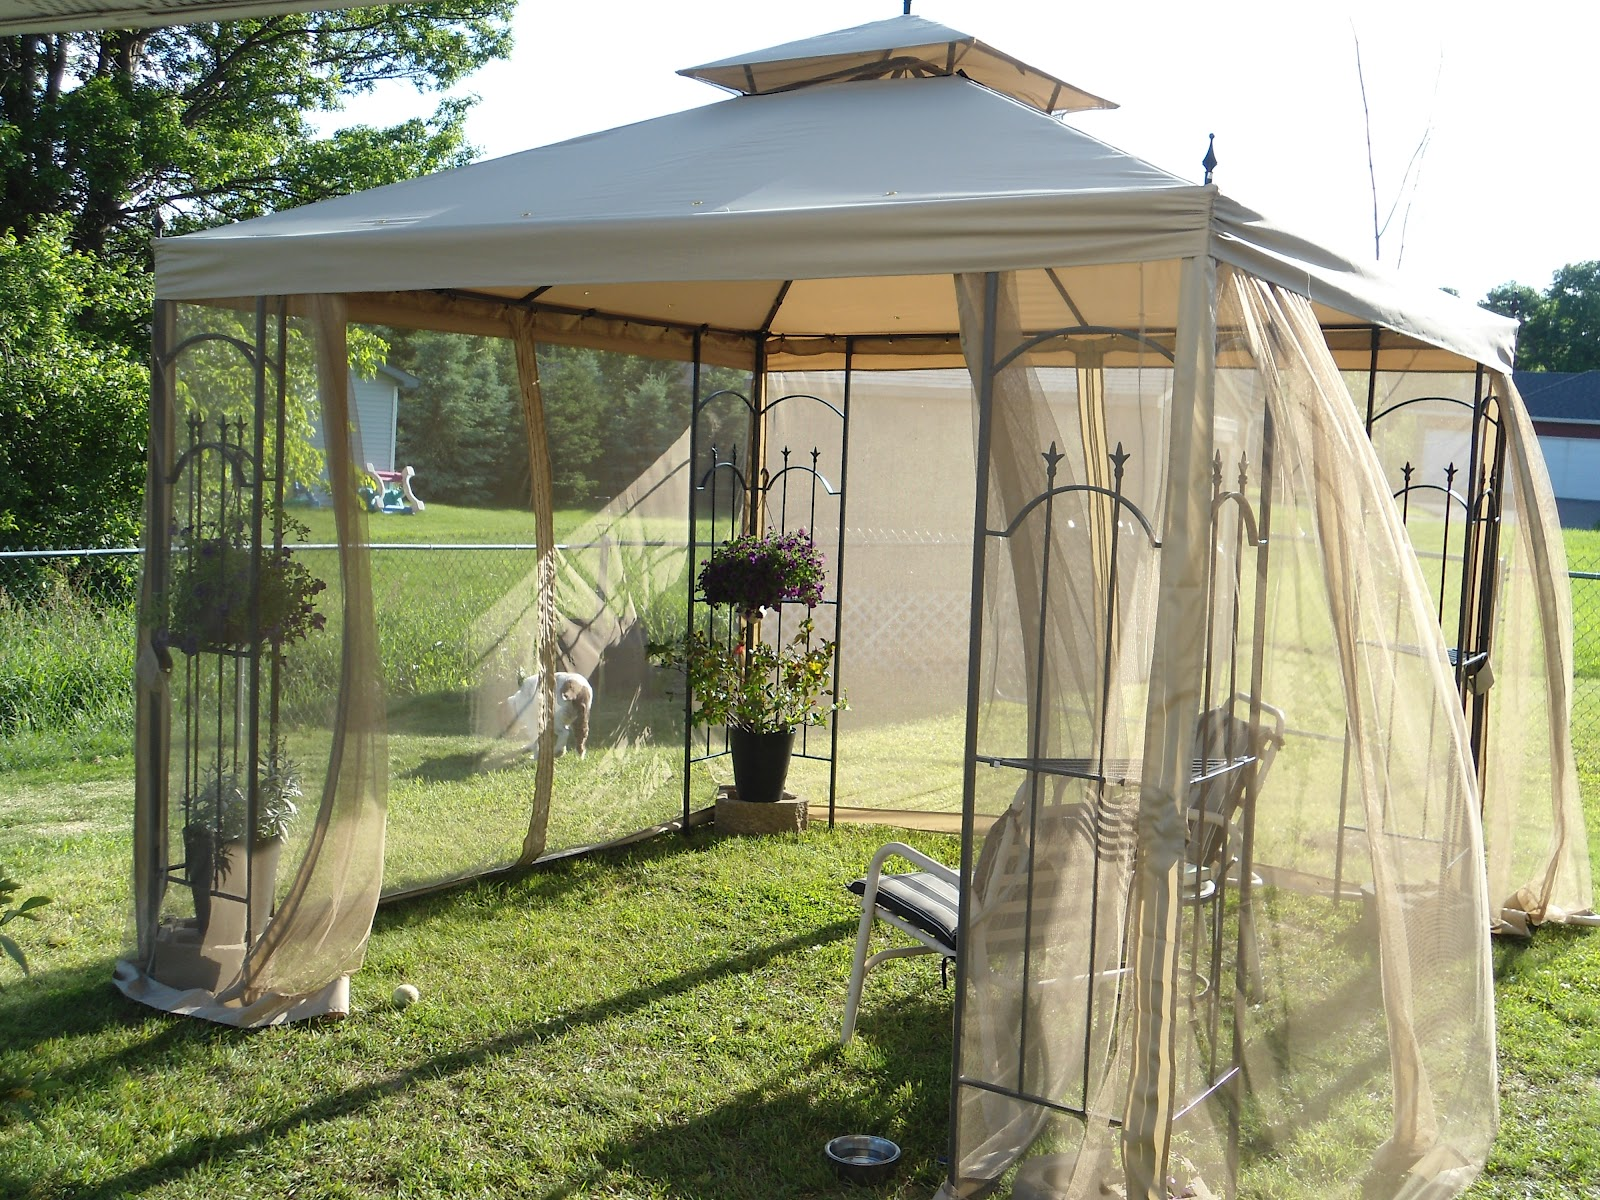 Gazebo curtains outdoor - Living Large With A Canopy Or A Gazebo And Lemonade For Fifty Cents